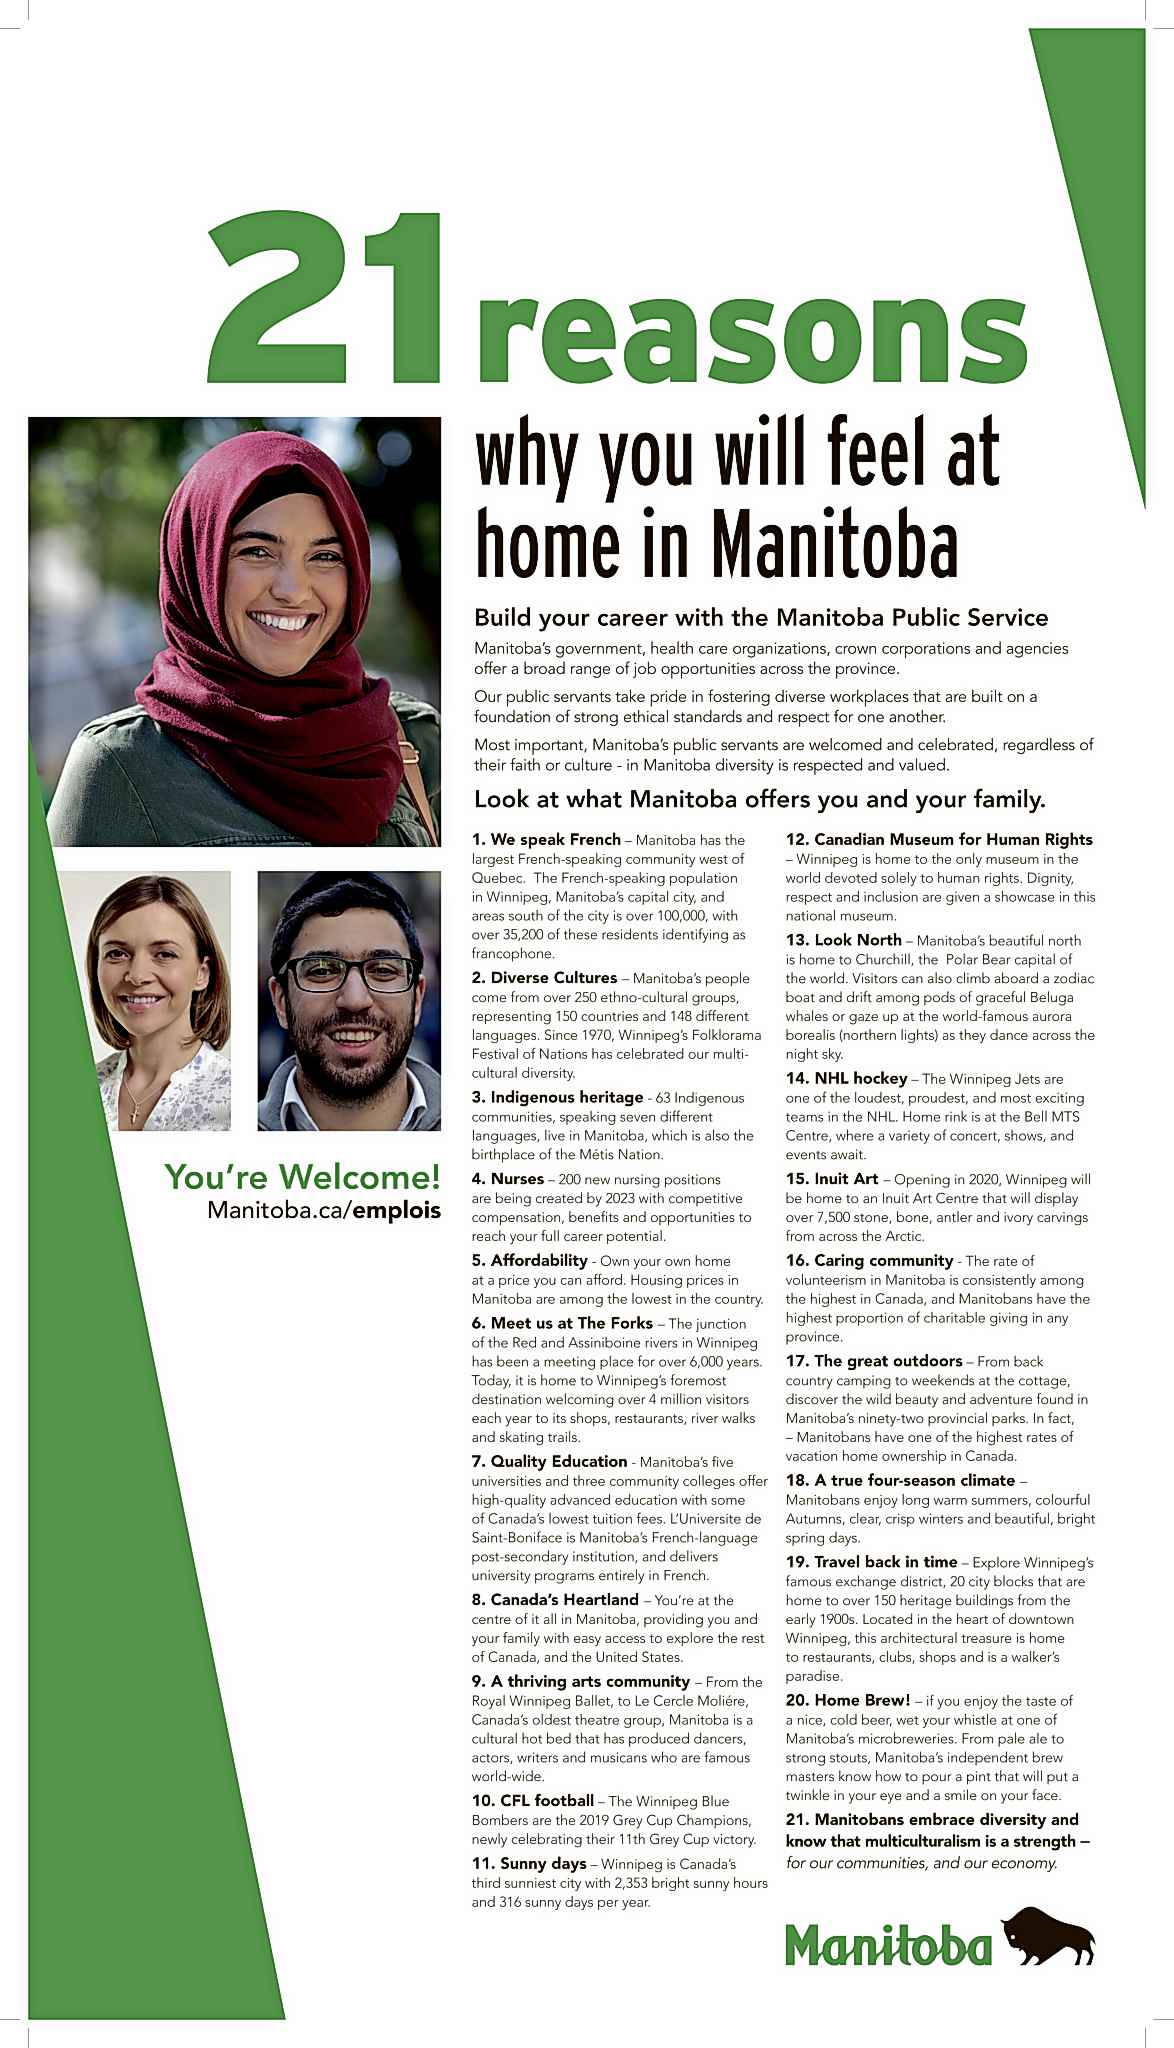 Was the placement of newspaper ads a cheeky way for Manitoba to express its disdain for Bill 21 in a higher-profile manner than other provinces?